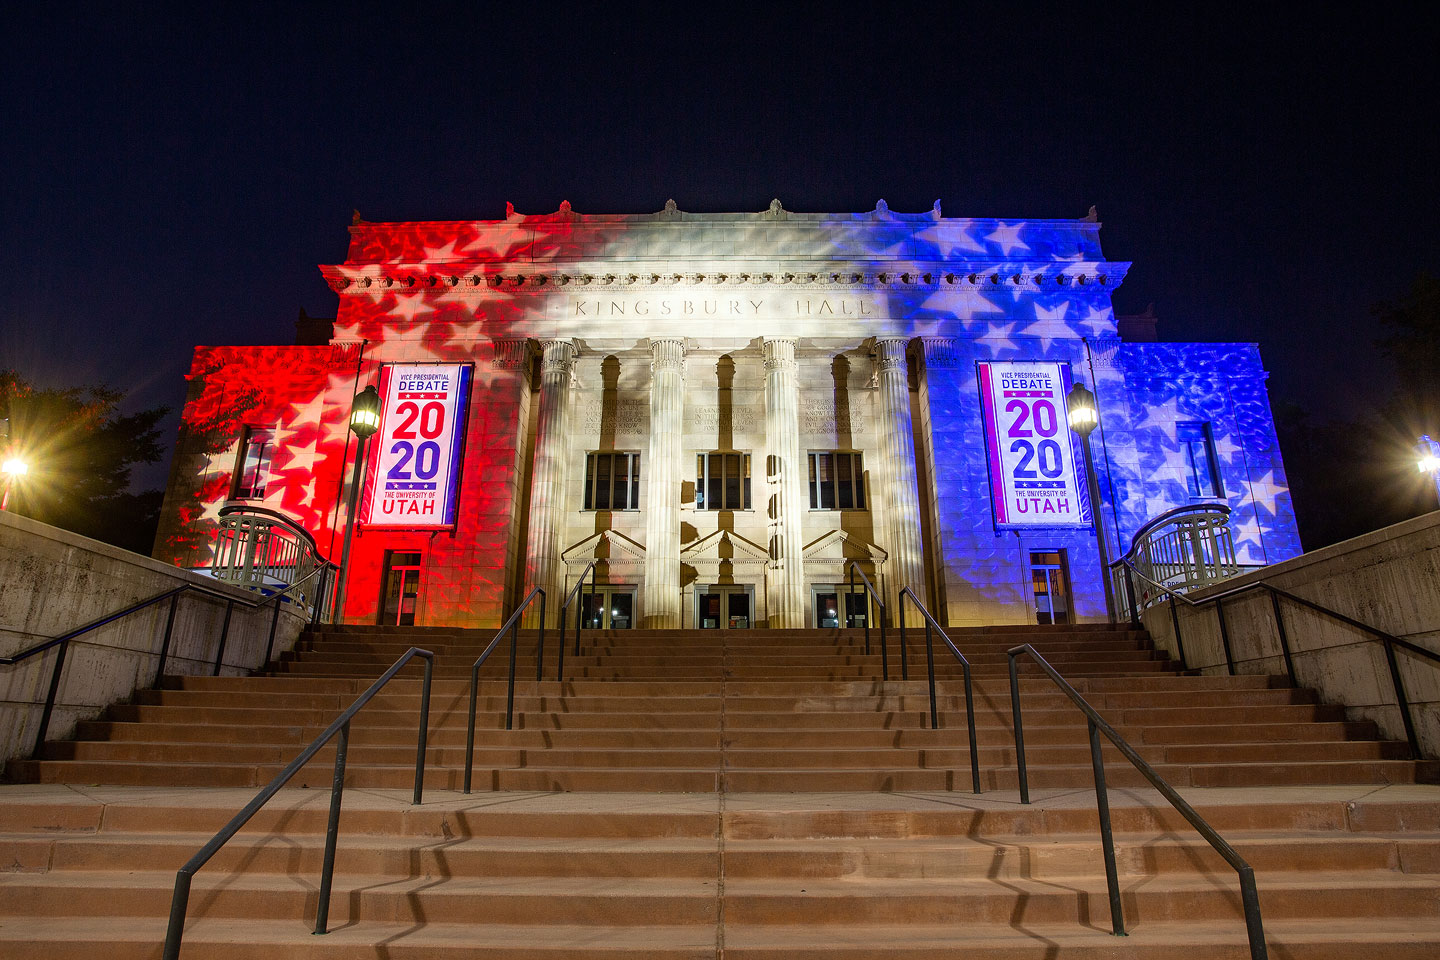 Kingsbury Hall lit red, white and blue